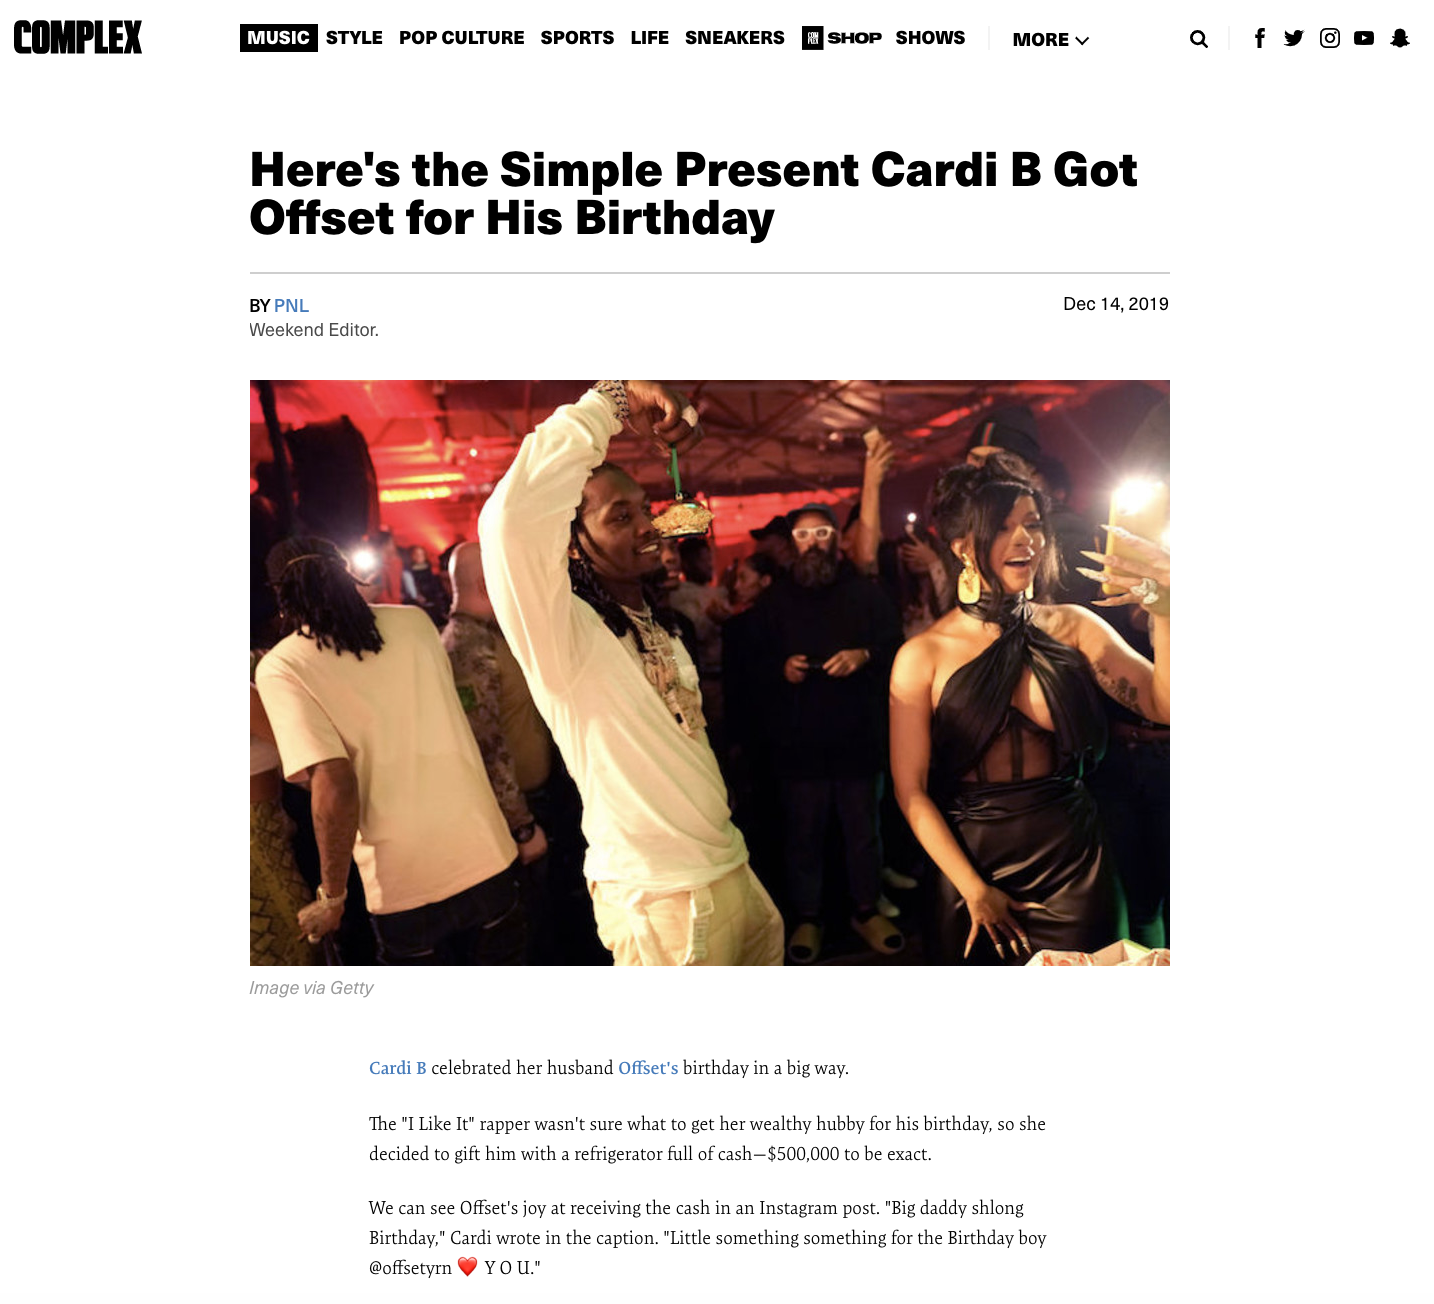 Here's the Simple Present Cardi B Got Offset for His Birthday